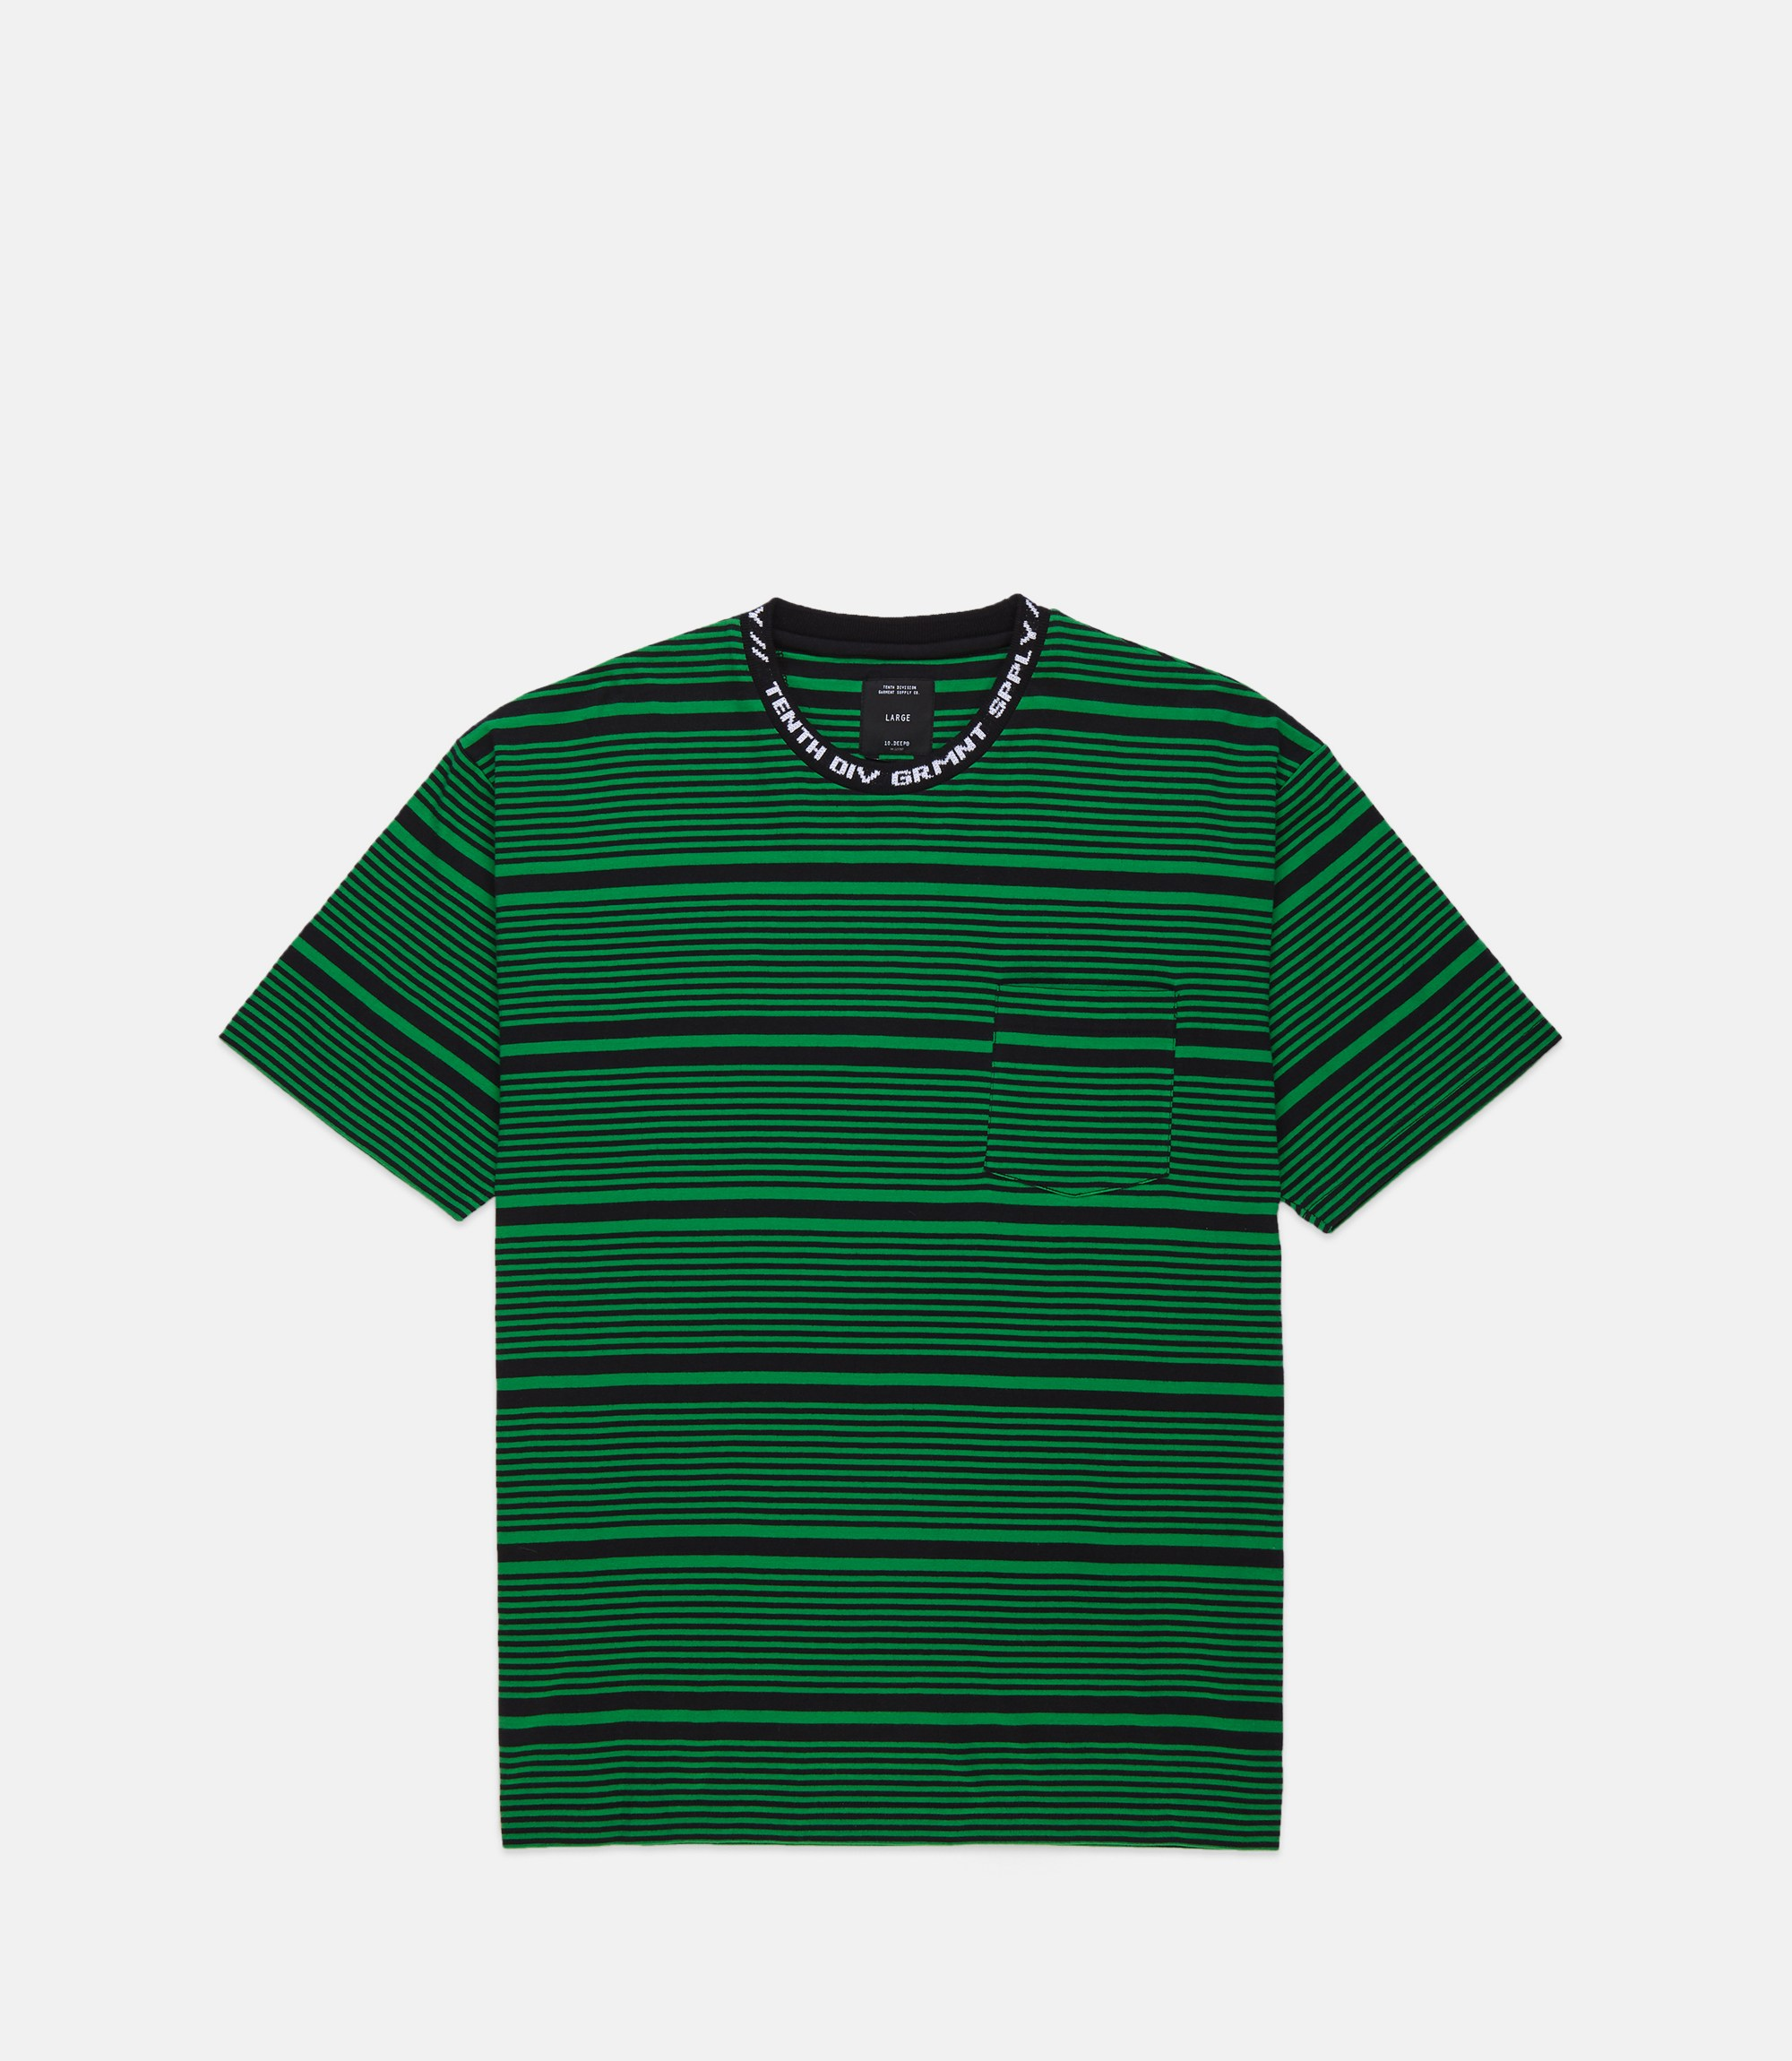 182TD4208_FOREIGNER-YD-STRIPED-TEE_GREEN_FRONT